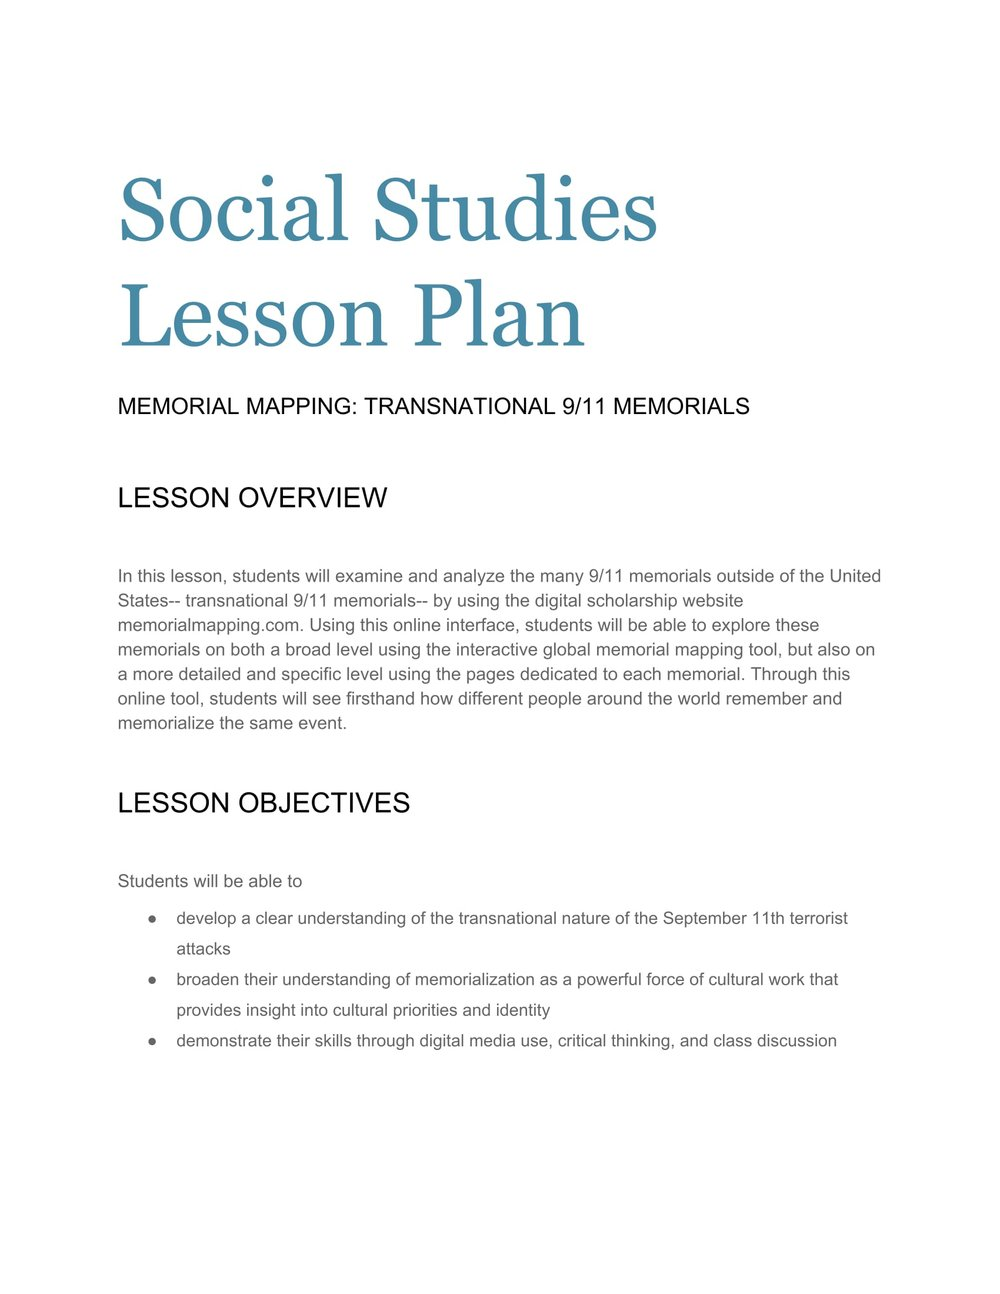 Social Studies Lesson Plan Final-1.jpg